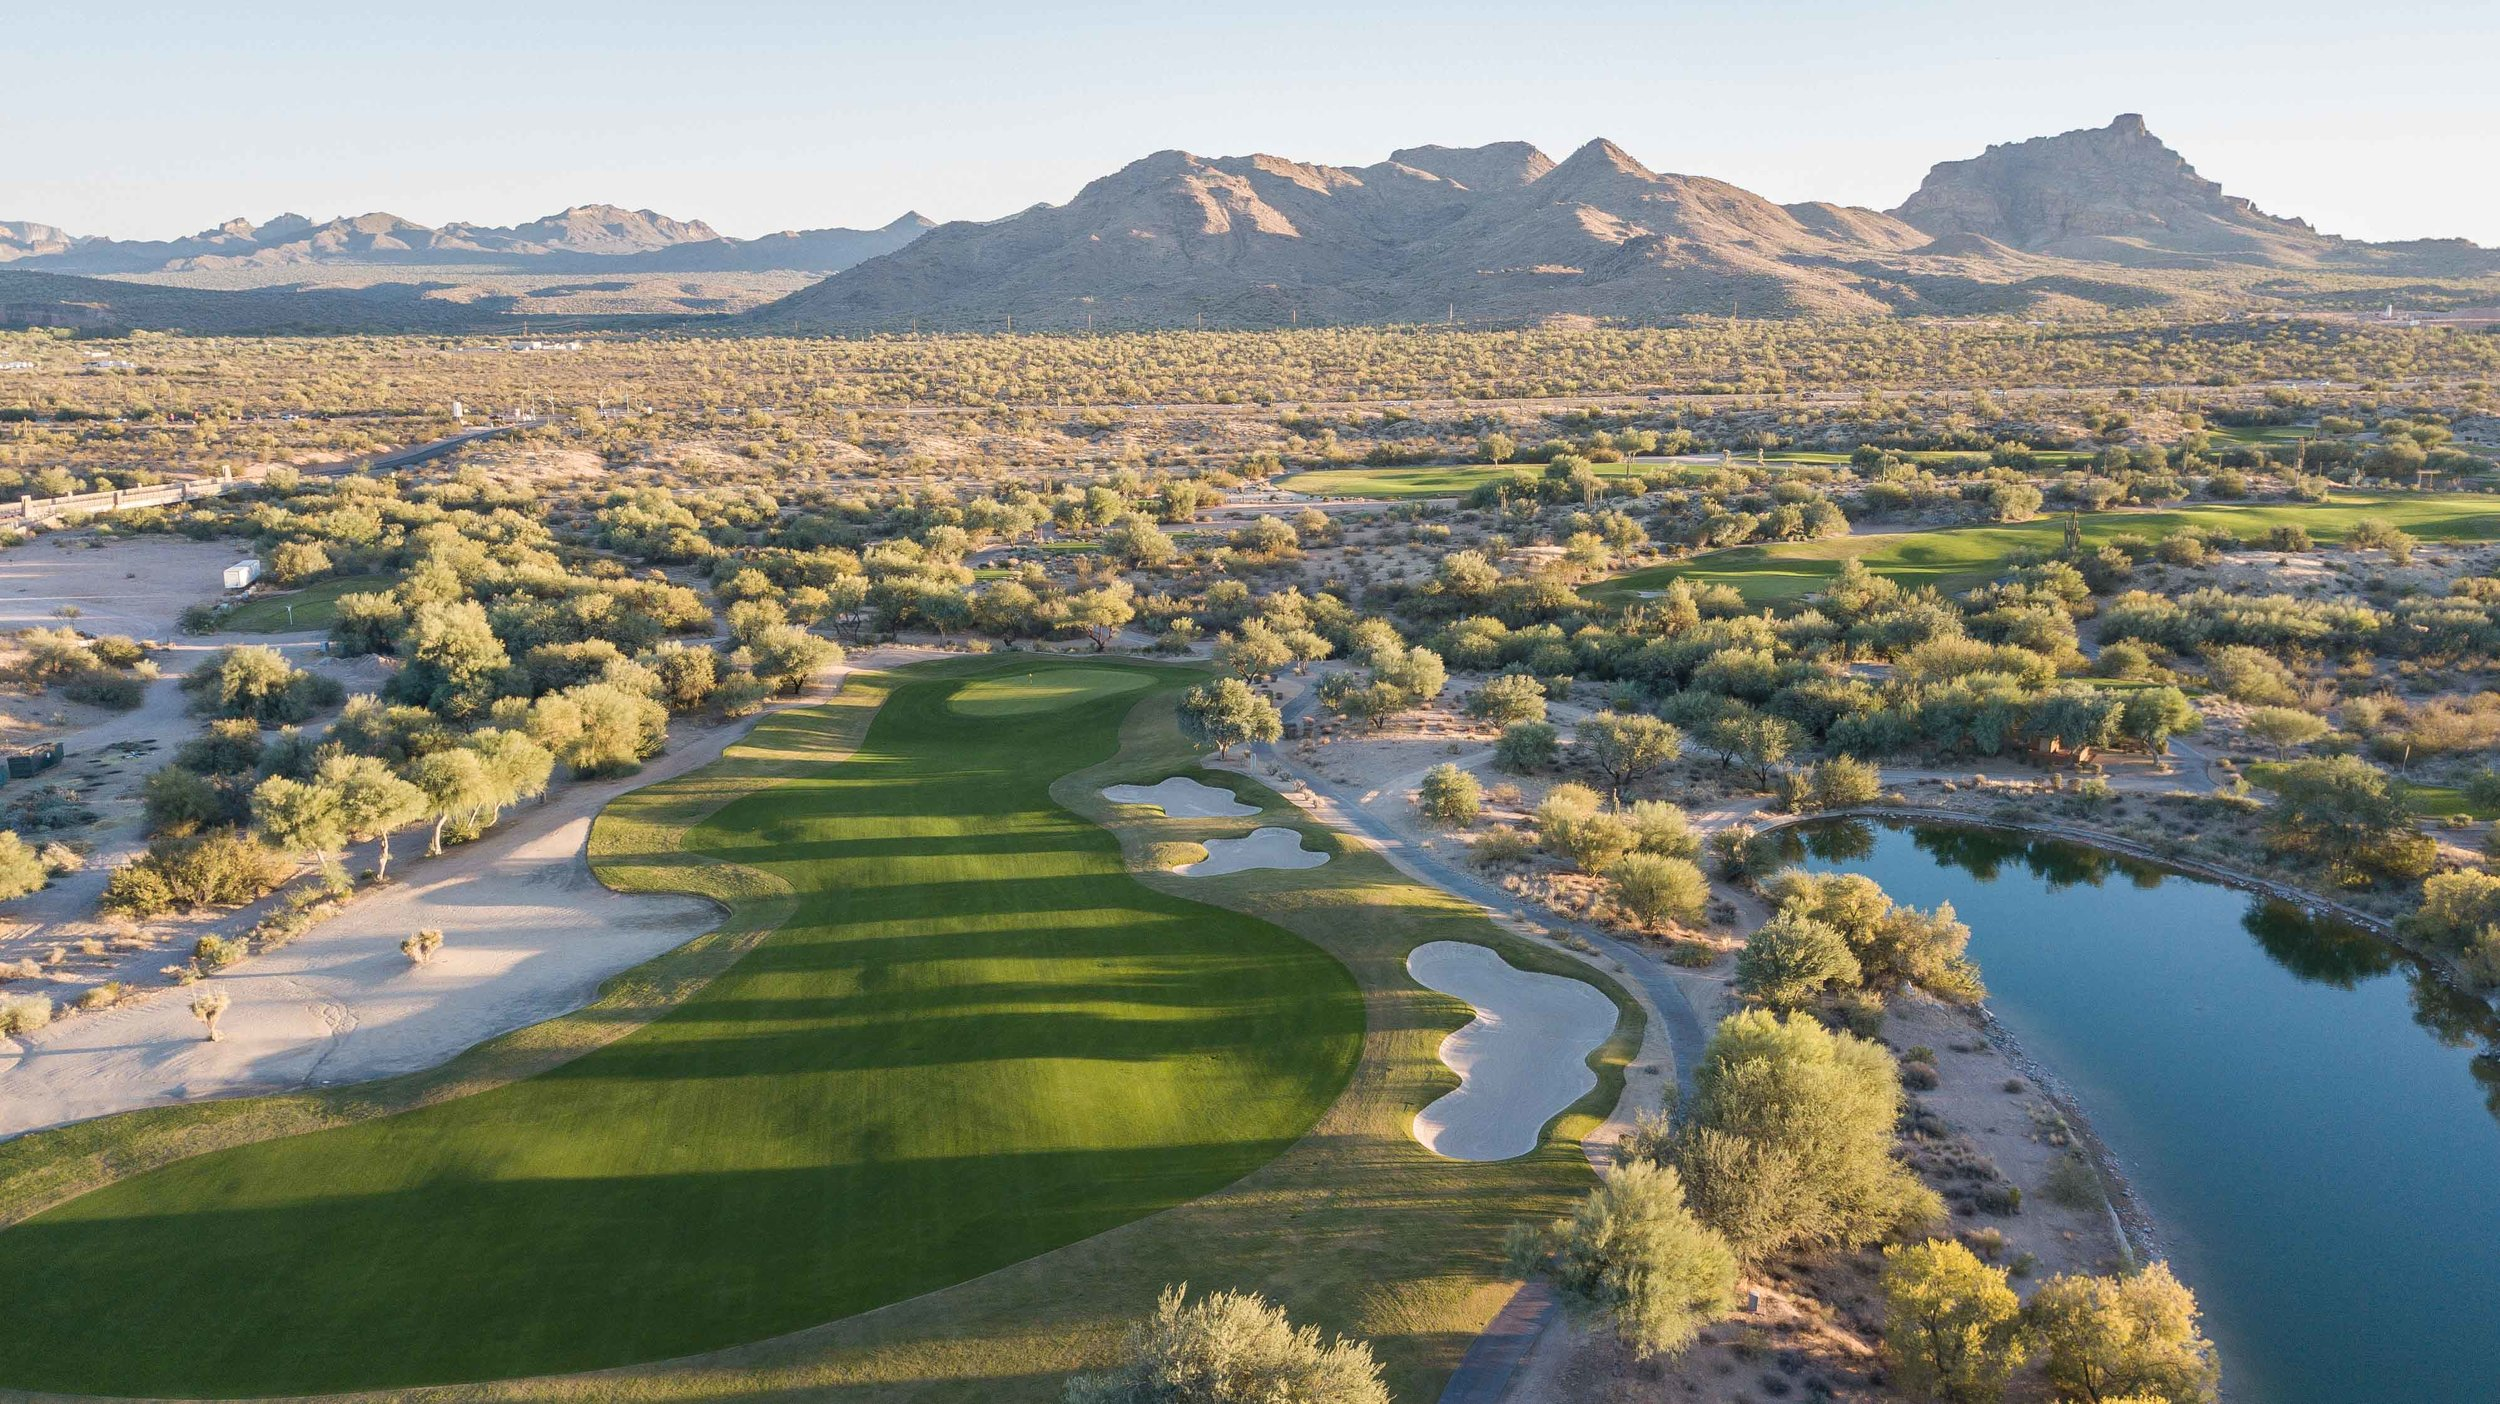 We-Ko-Pa is my go to option for public golf in Scottsdale